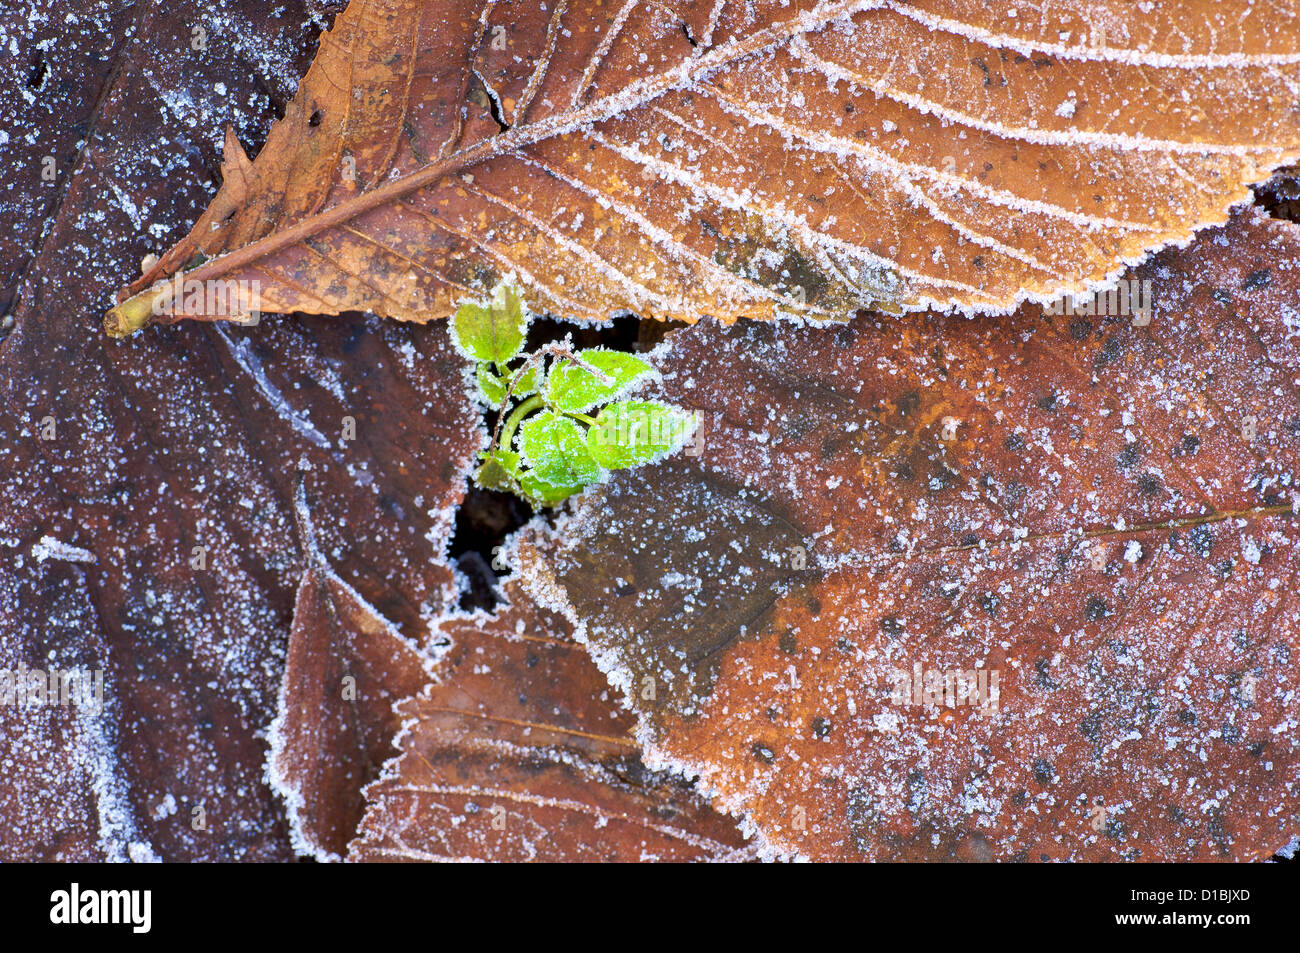 Green shoots breaking through frozen ground and dead autumn leaves on woodland floor Stock Photo